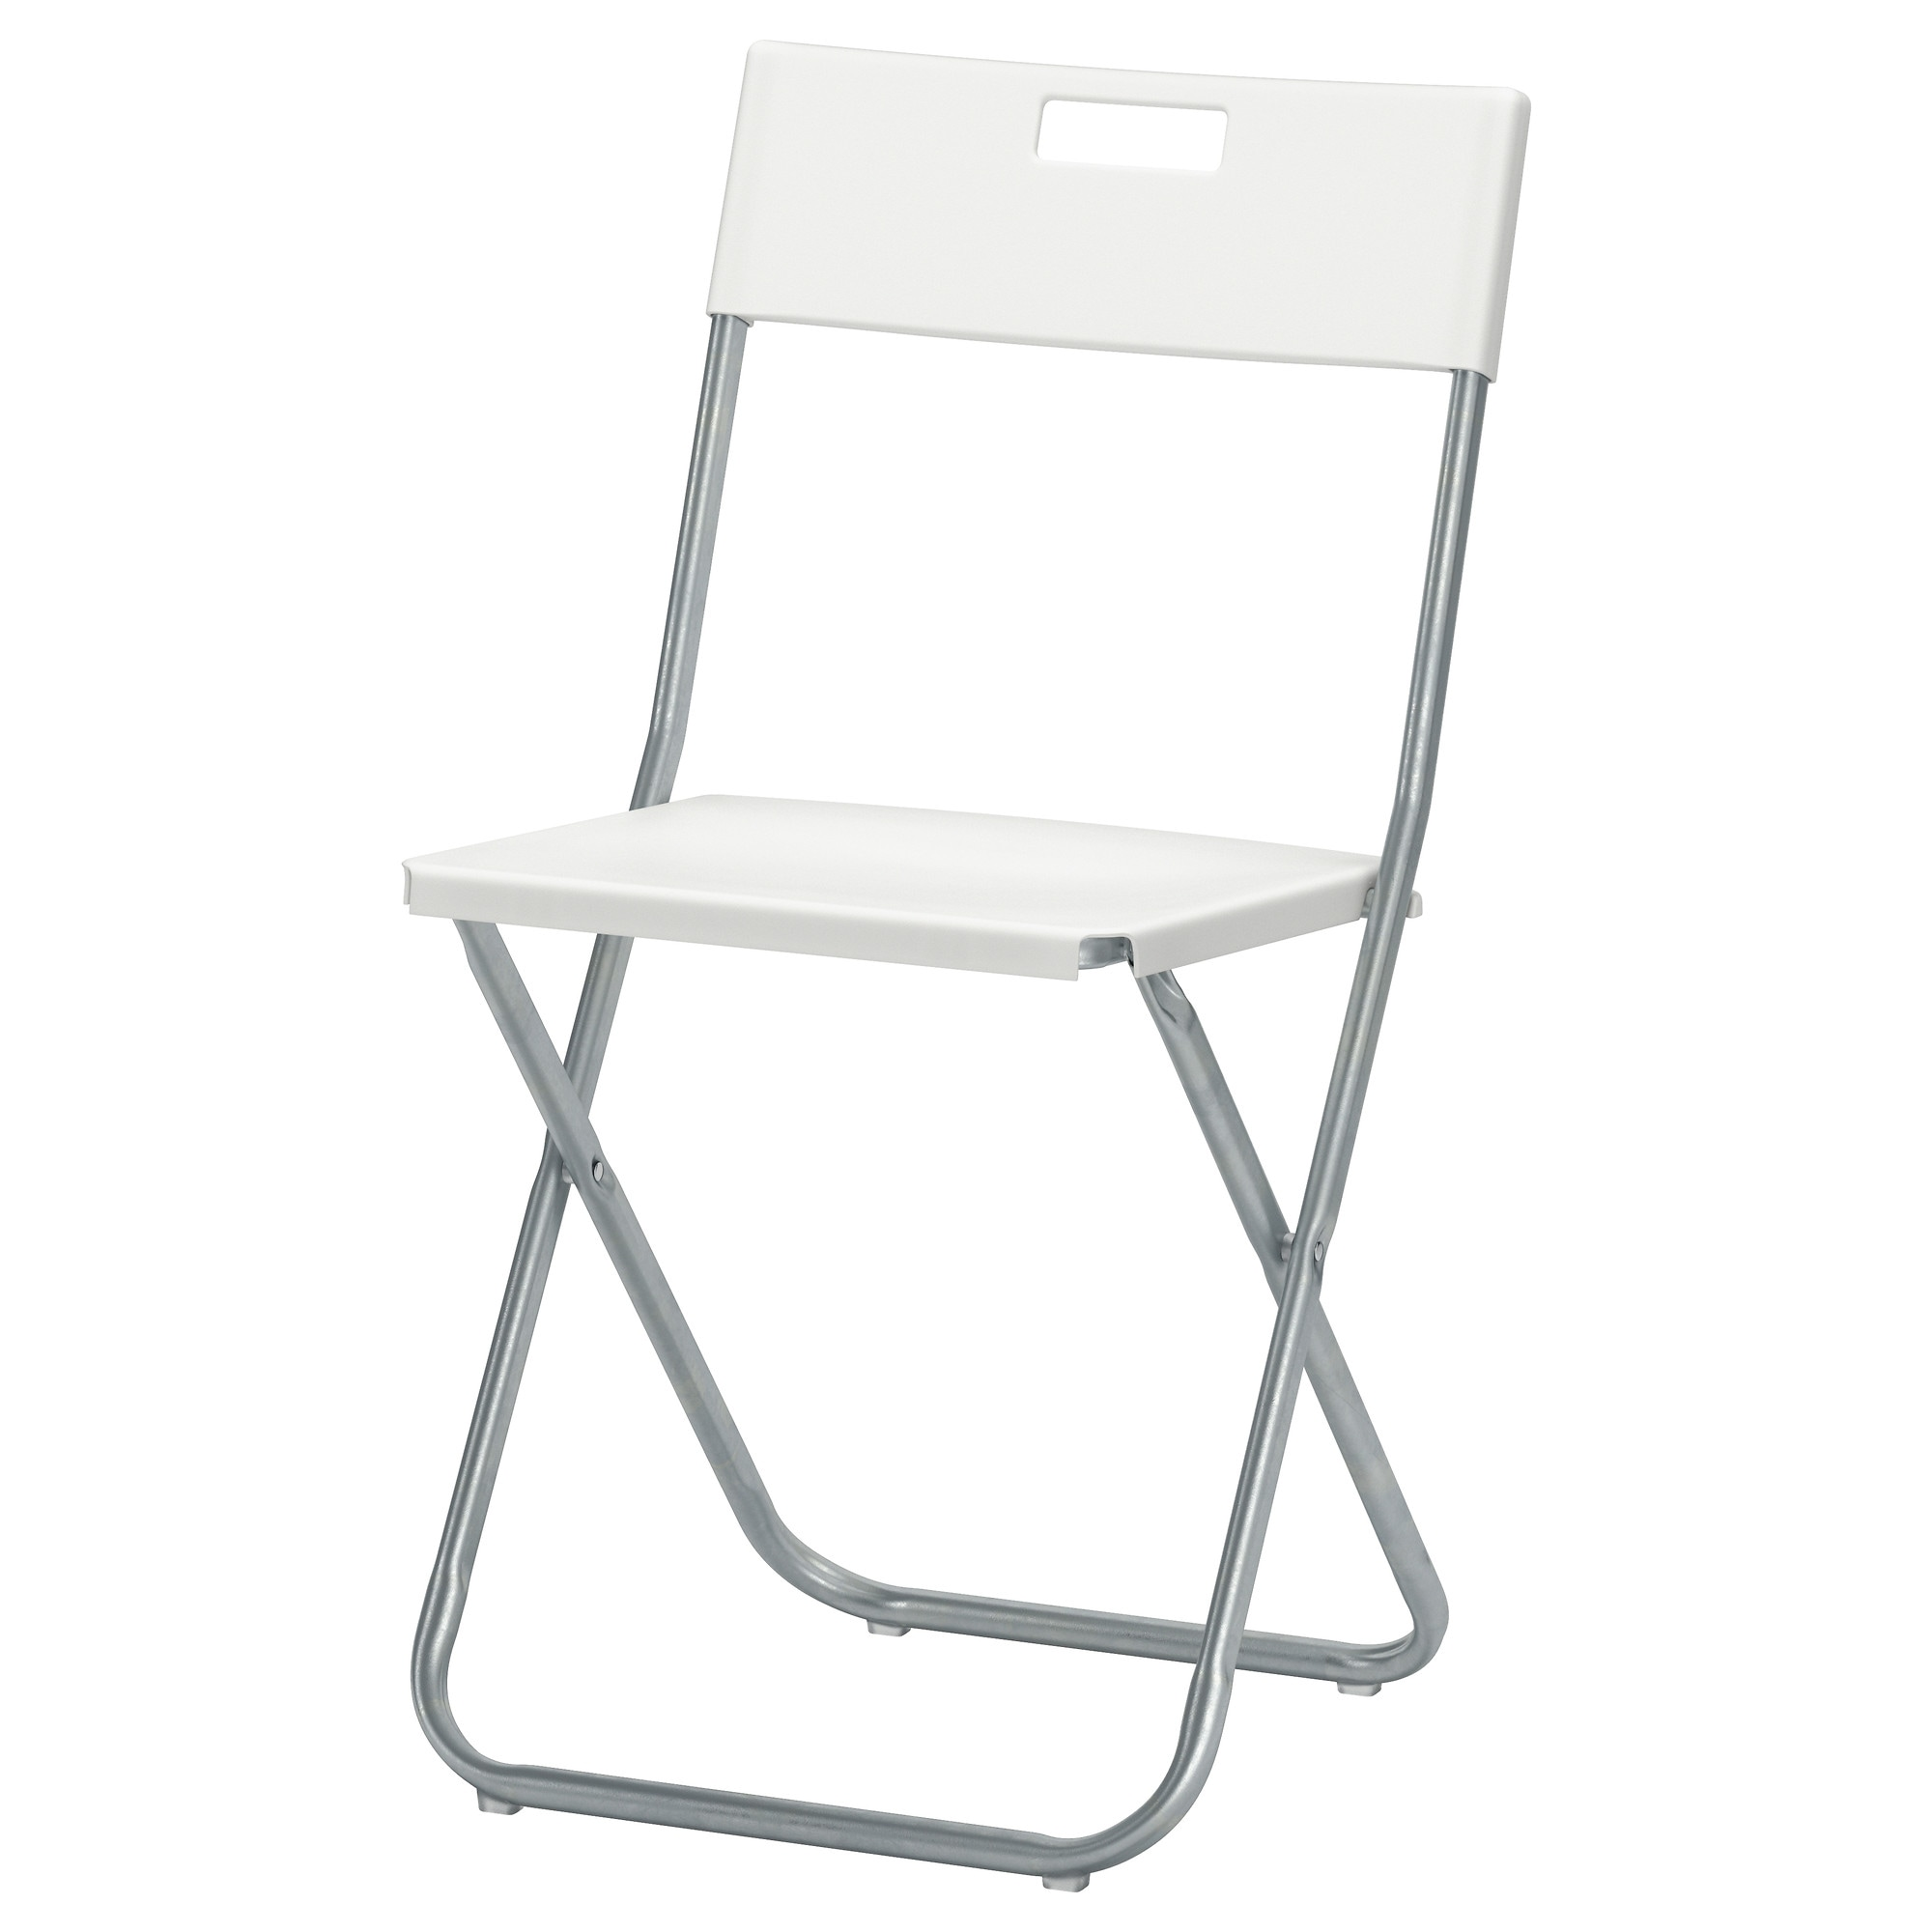 Black chair and white chair - Gunde Folding Chair White Tested For 220 Lb Width 16 1 8